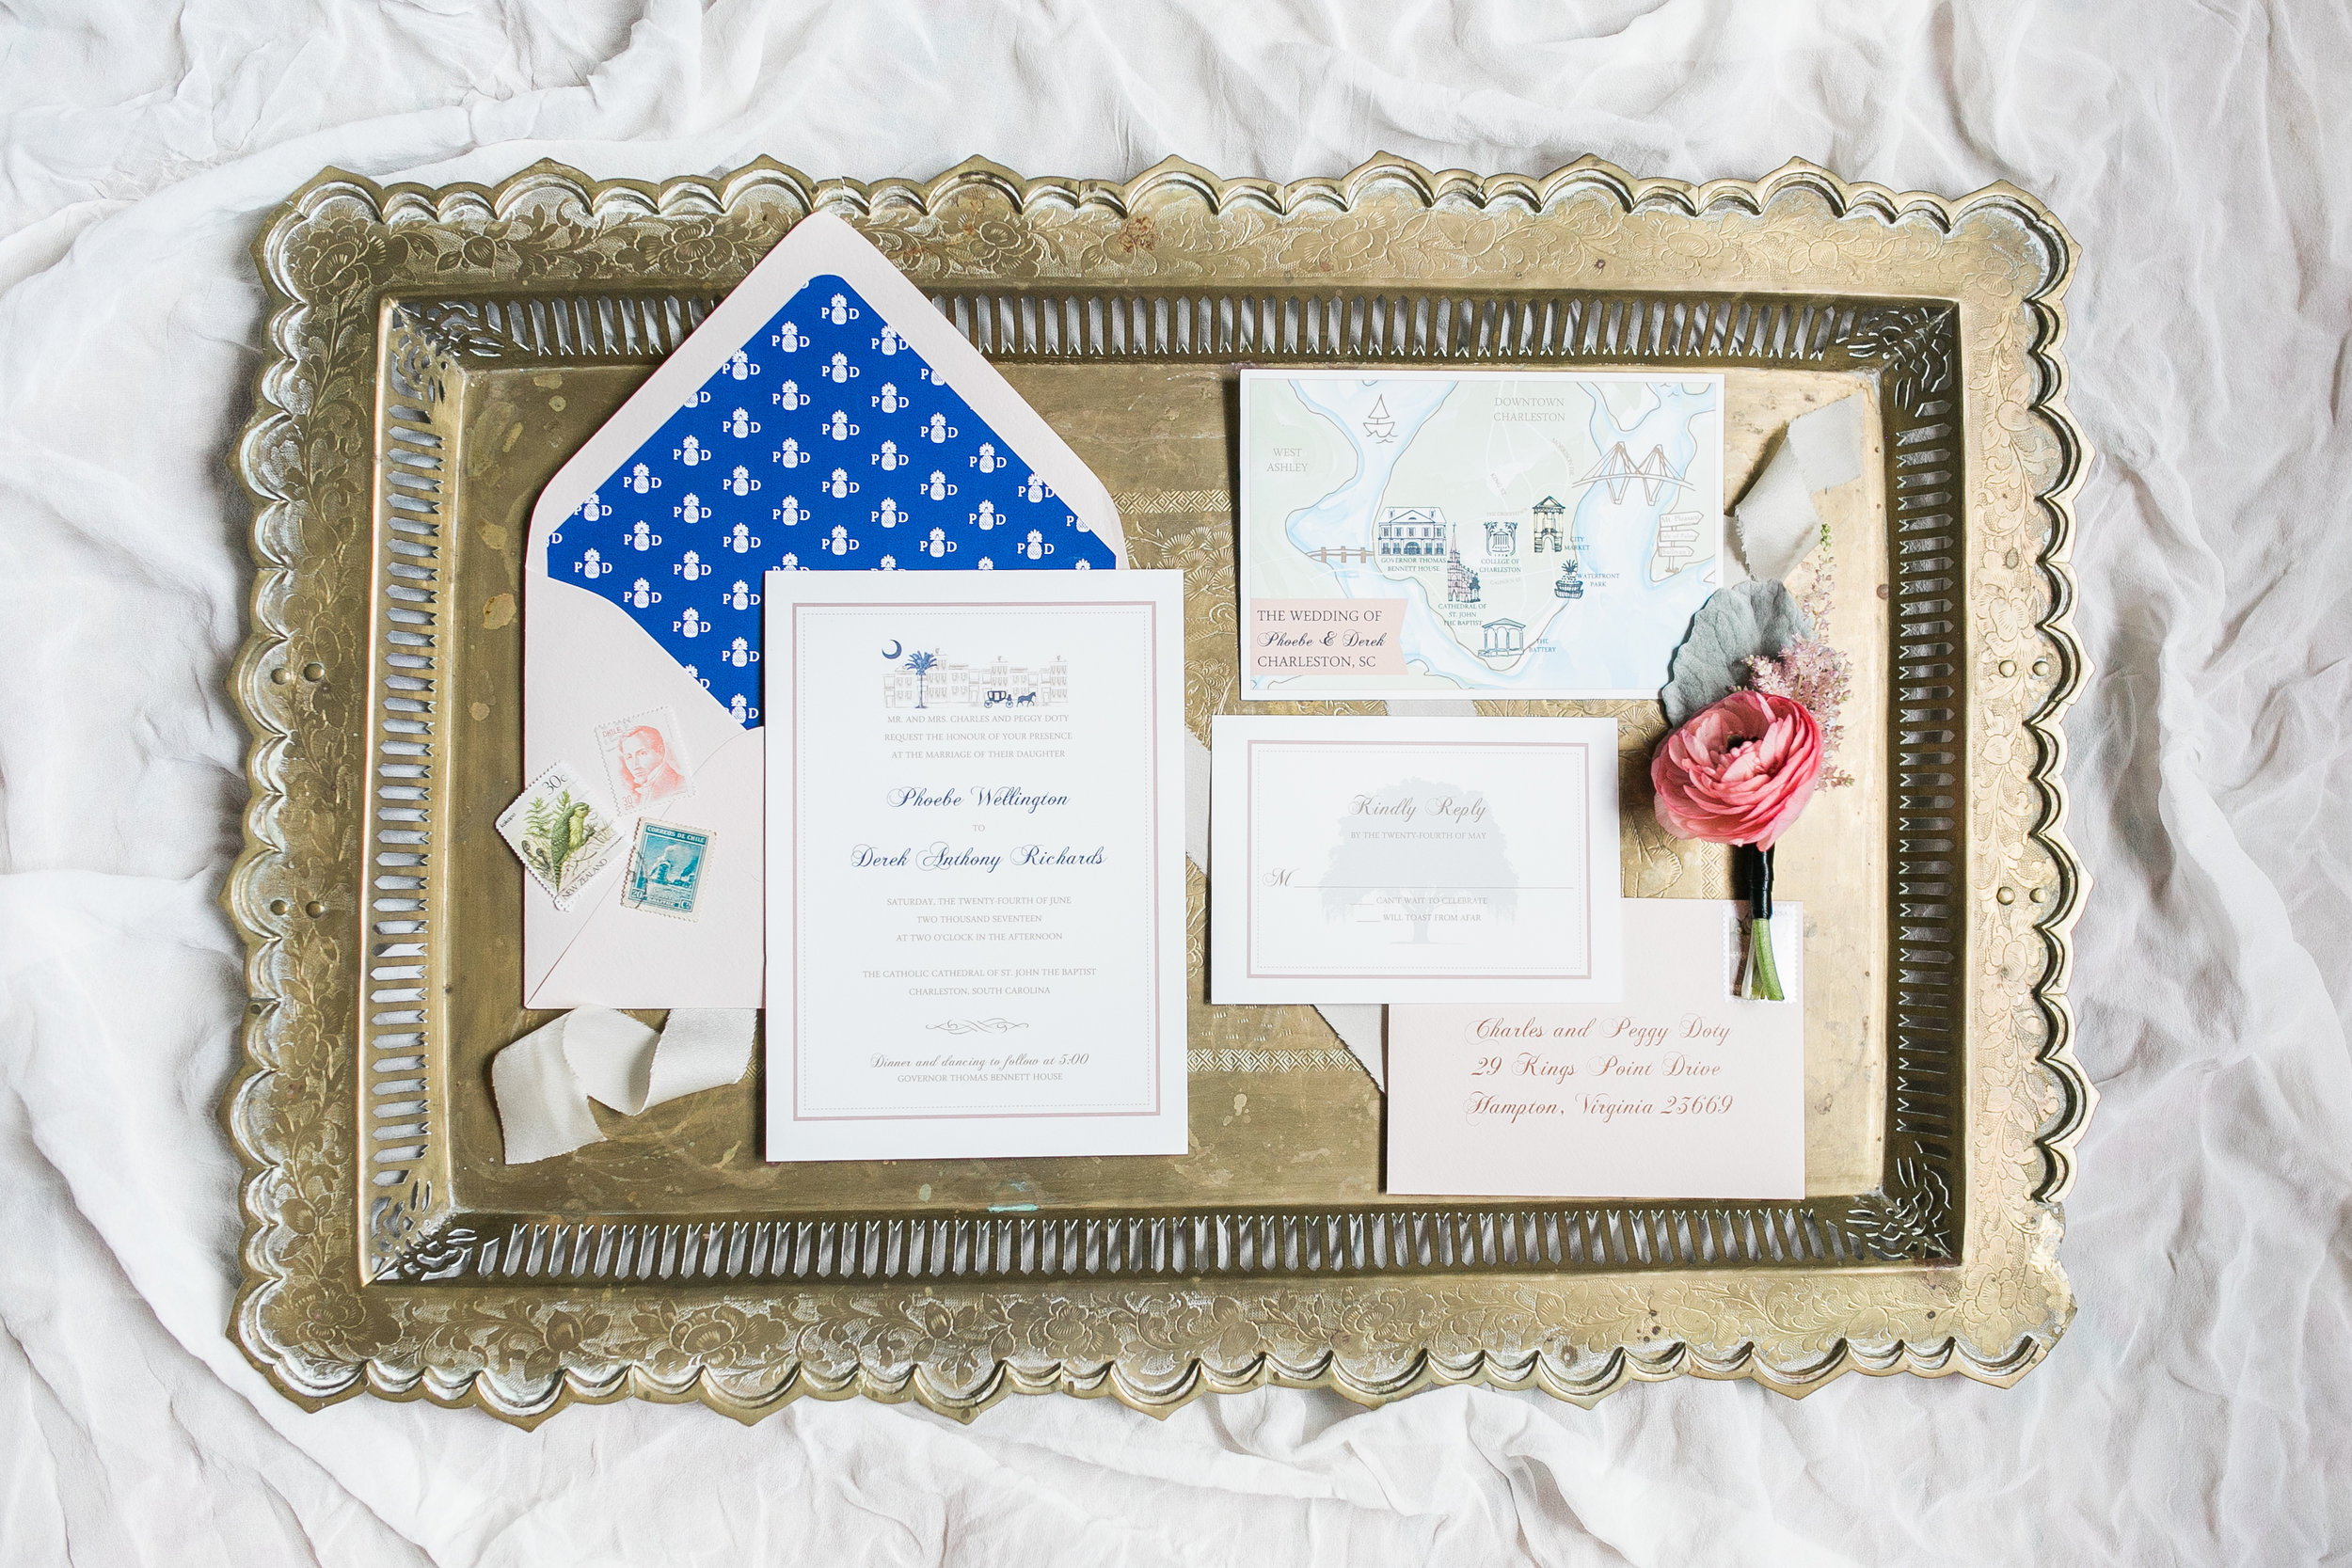 Blue and white palmetto logo invitations by Dodeline Design for Thomas Bennett House wedding  //  A Lowcountry Wedding Magazine & Blog